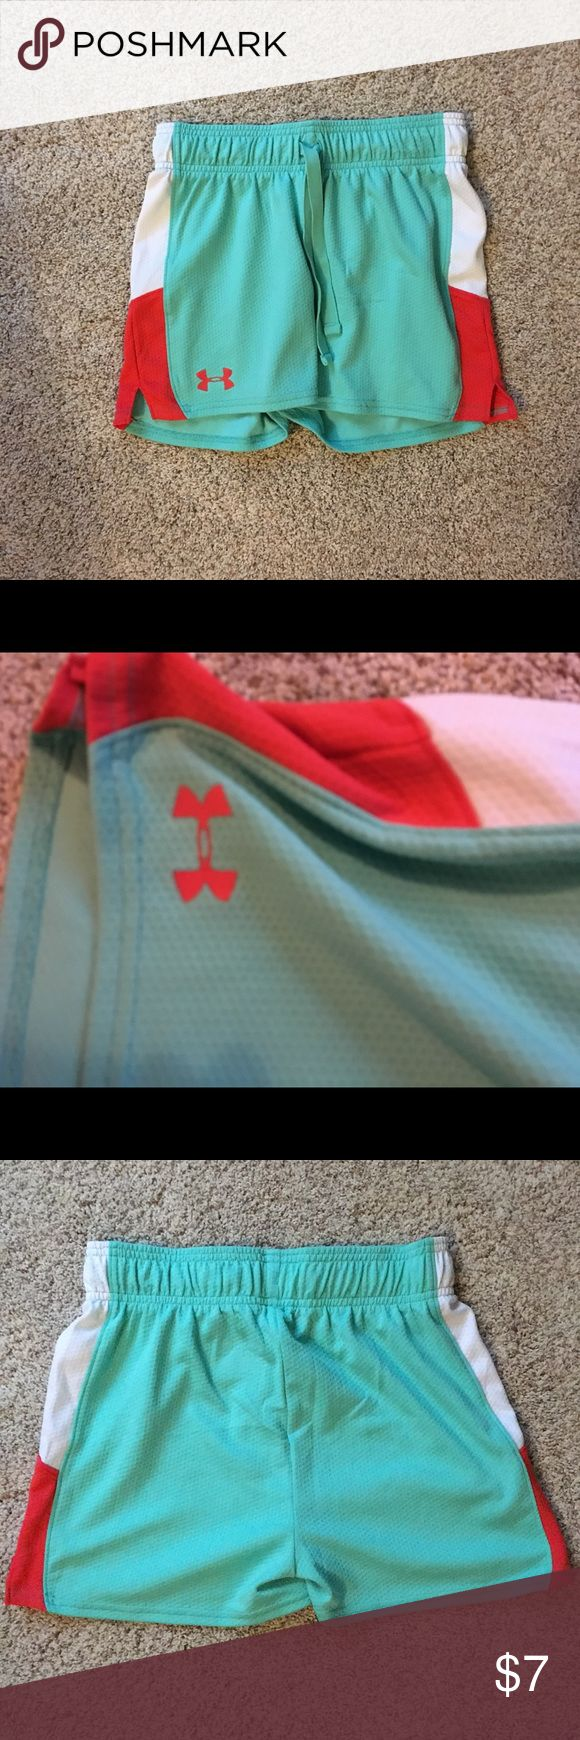 Green Under Armour Shorts Green Under Armour shorts with drawstring waist and orange and white contrast detail on the side. Matches with Green Under Armour Tank Top, also listed! Under Armour Bottoms Shorts